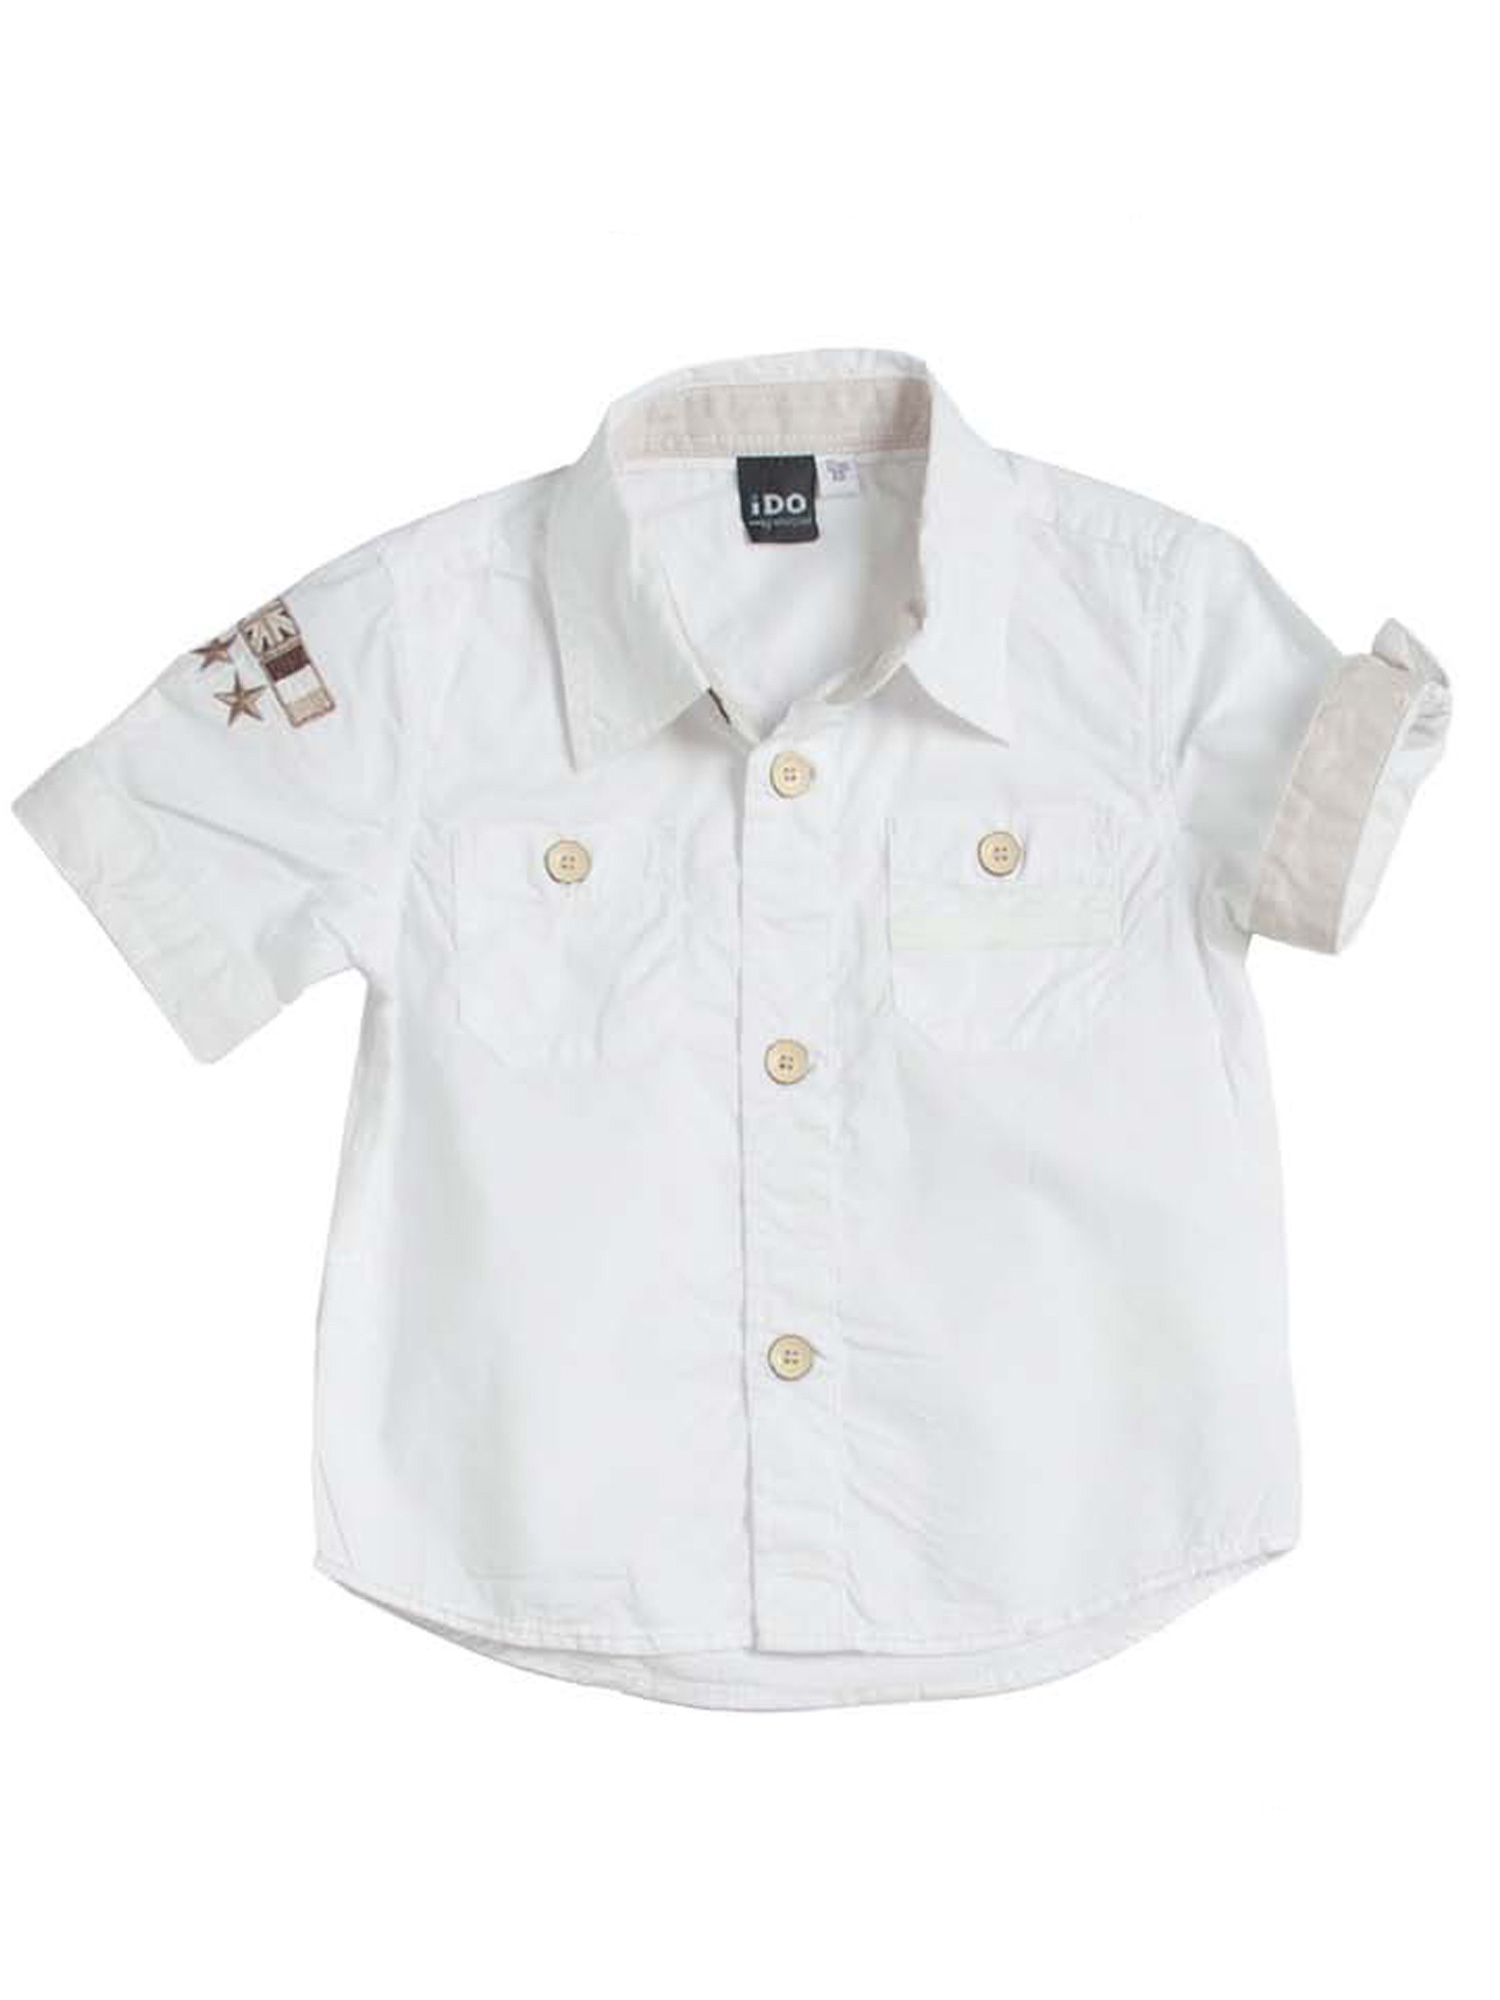 Boys classic short sleeve shirt